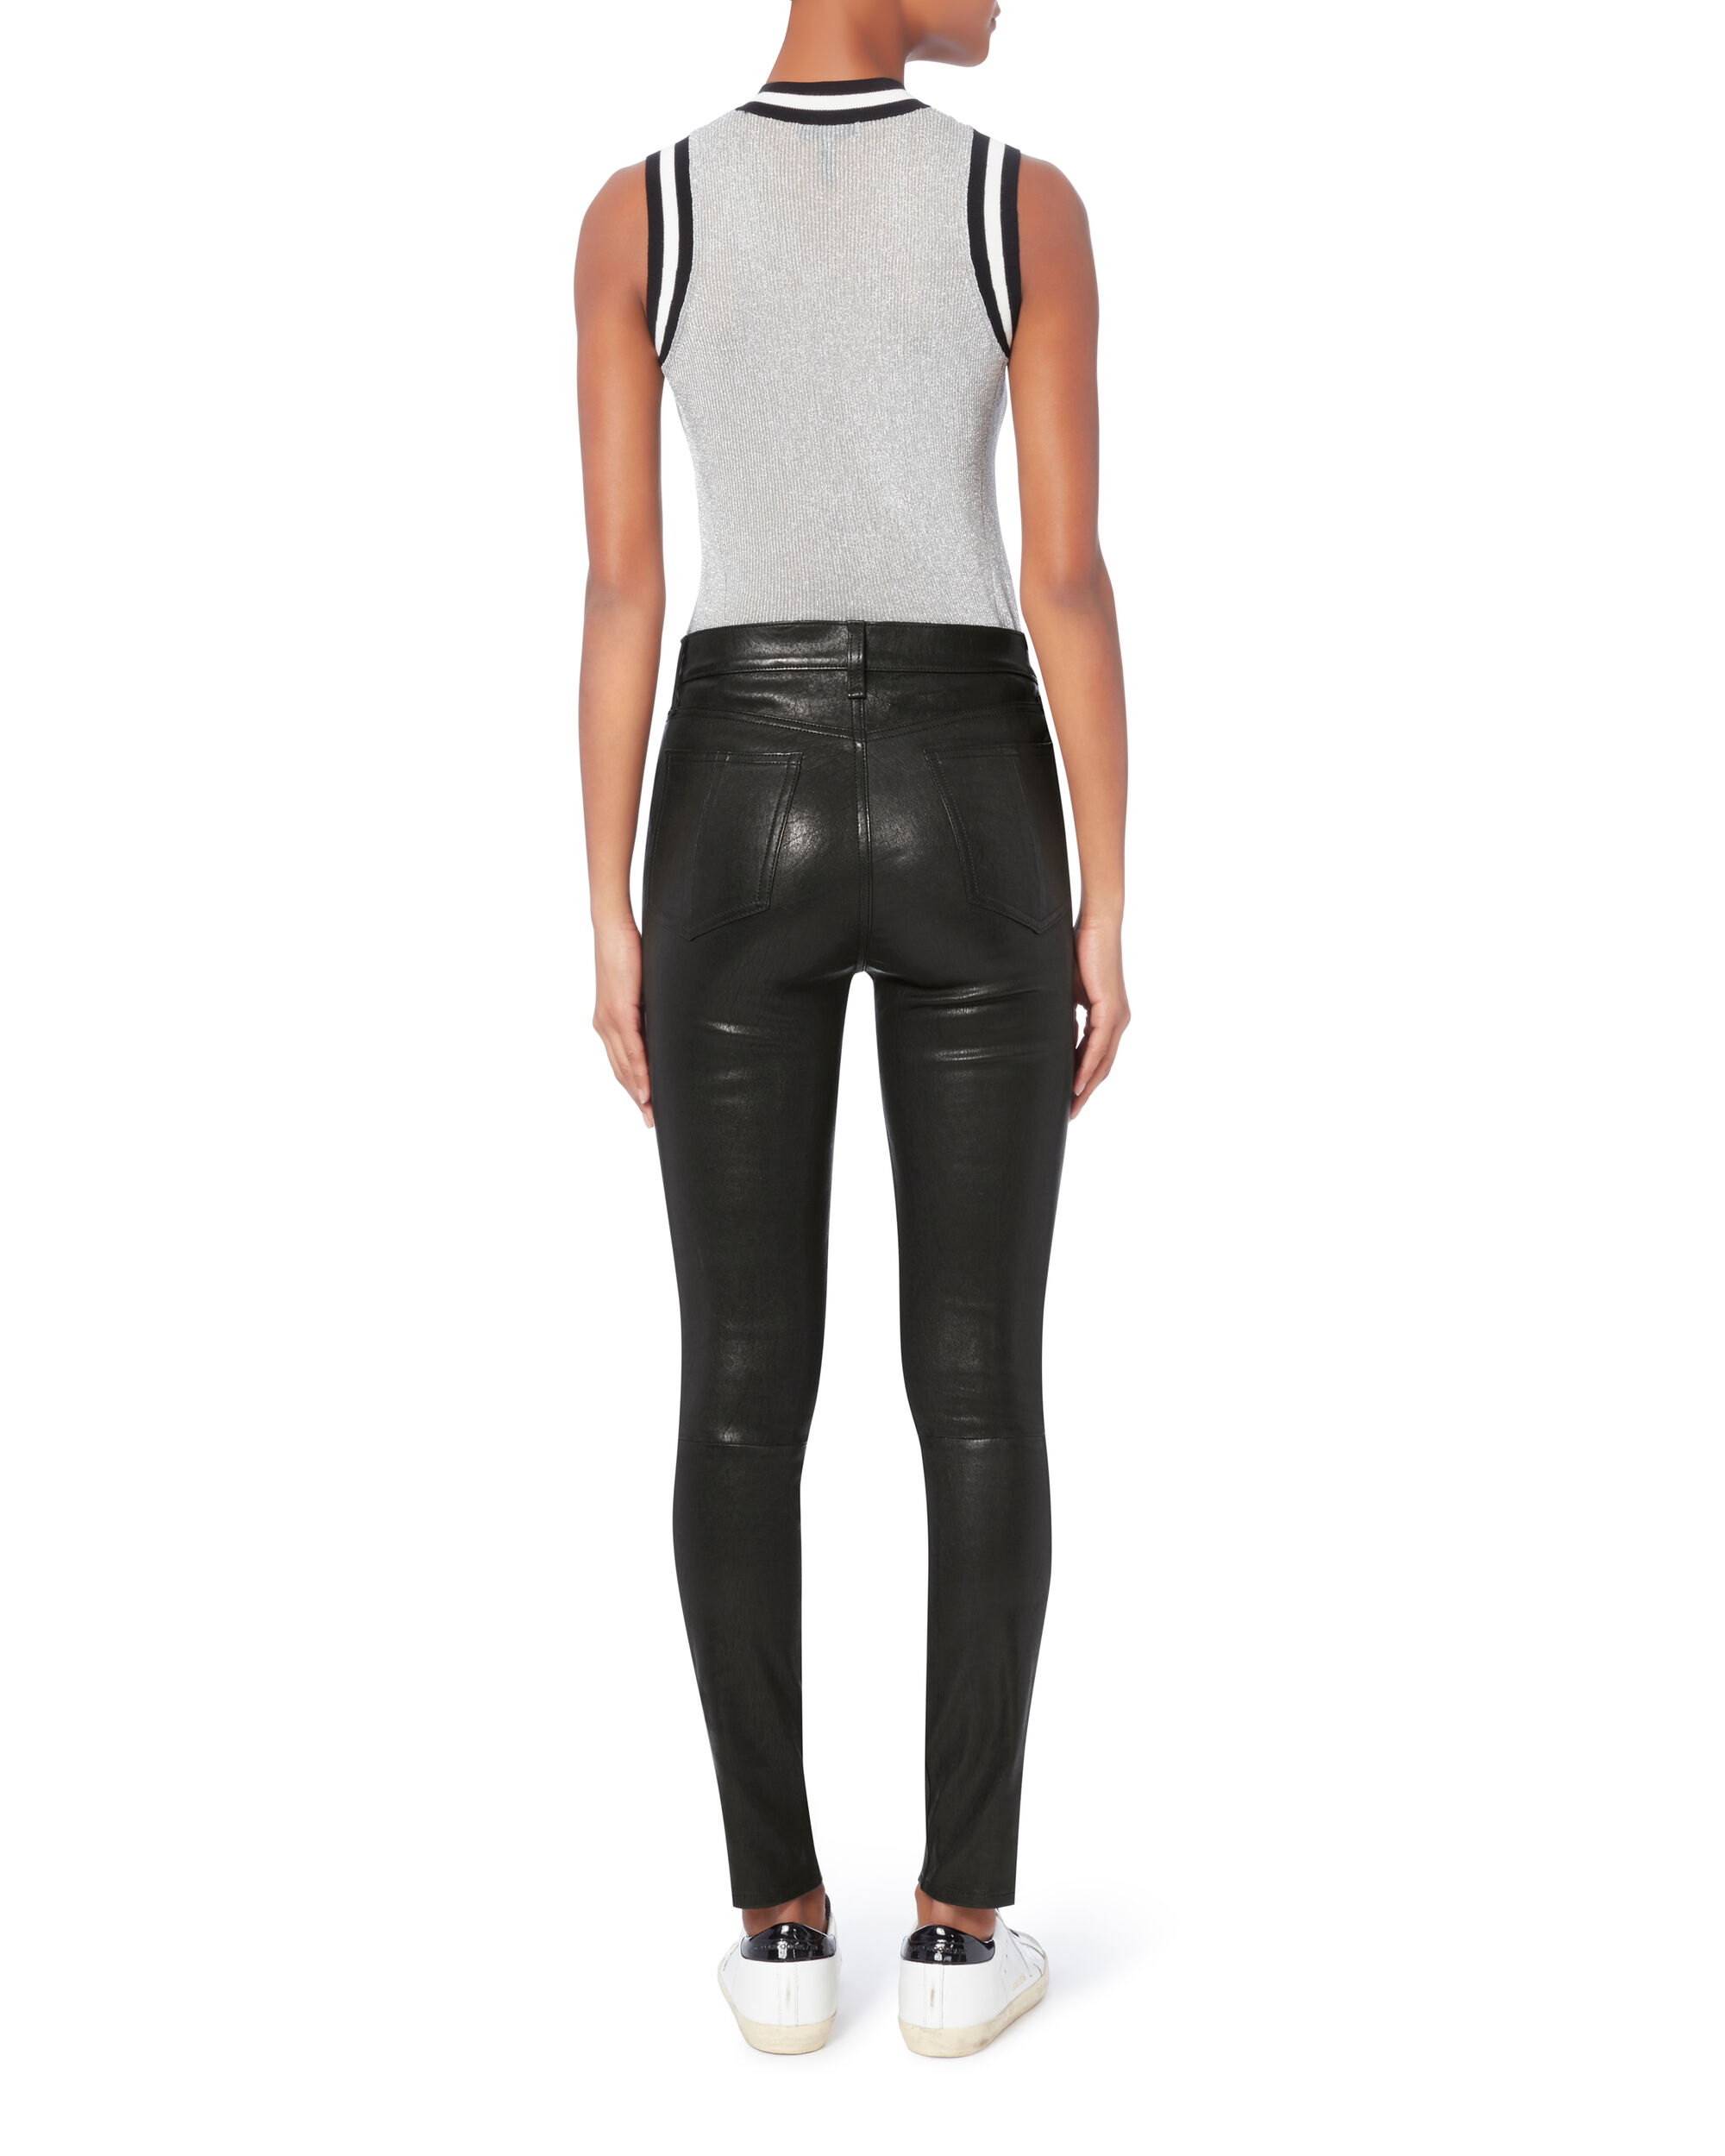 High-Rise Skinny Black Leather Pants, , hi-res